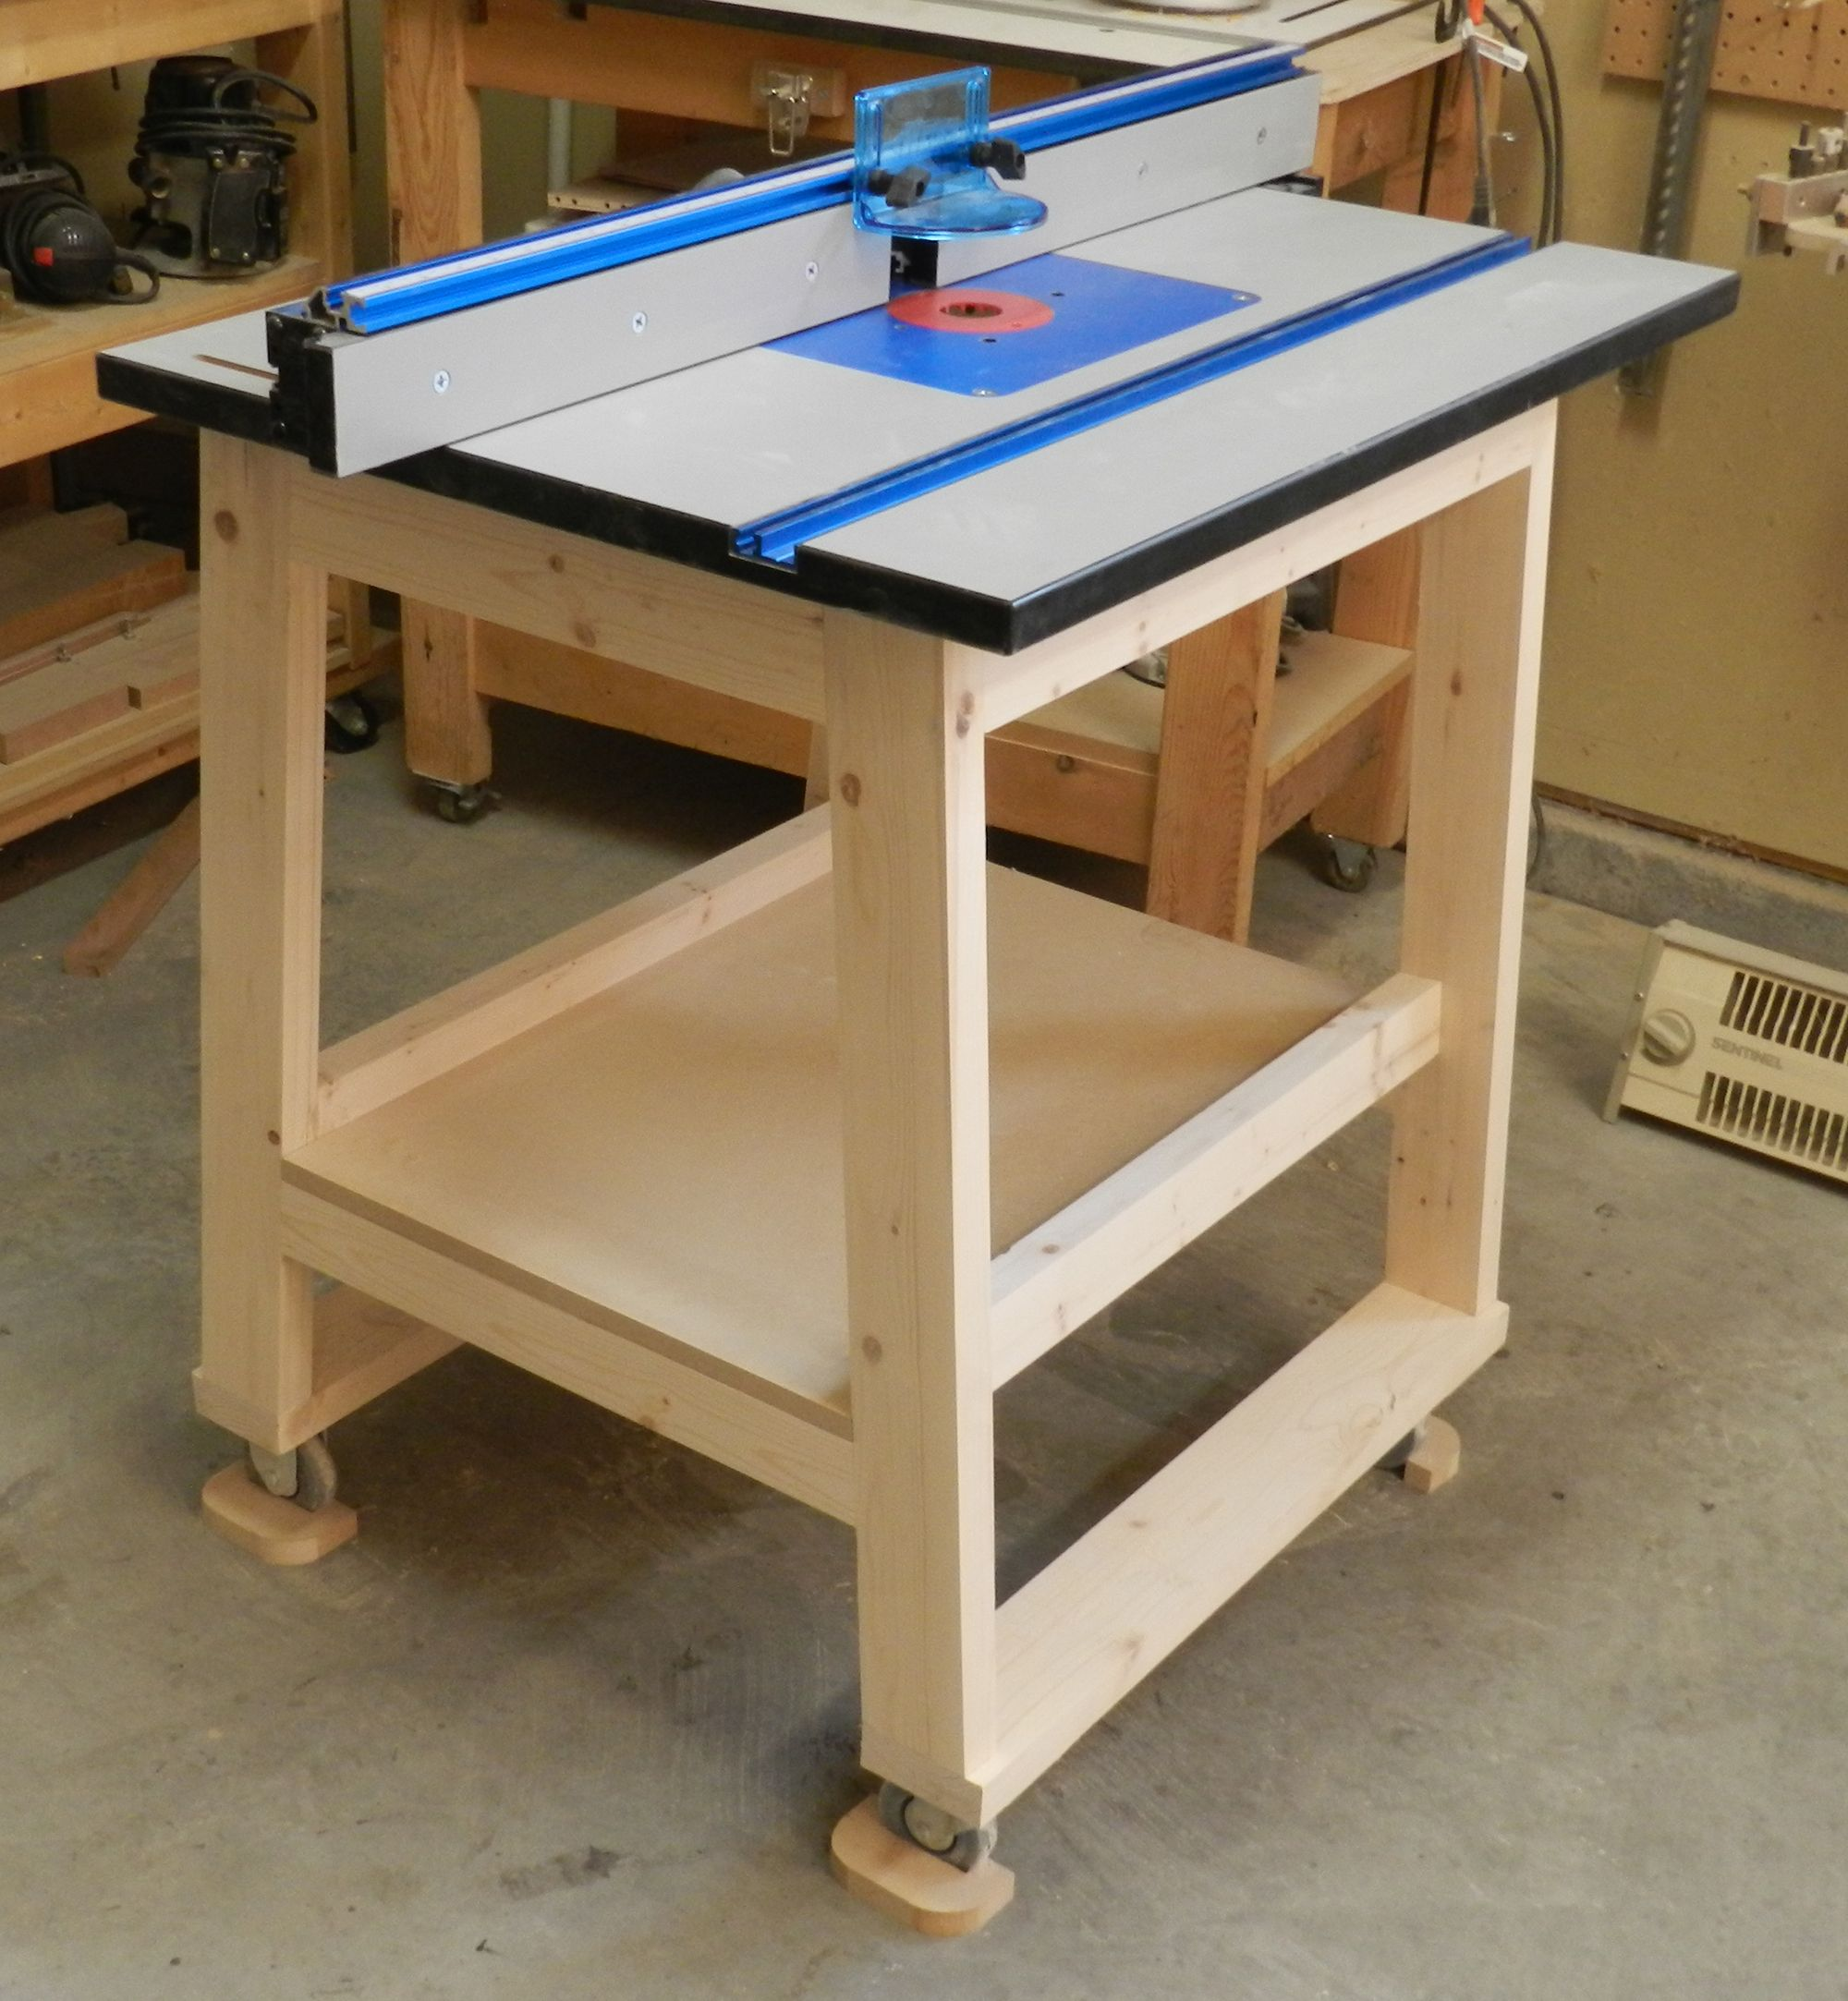 Wooden kreg router table plans diy blueprints kreg router table wooden kreg router table plans diy blueprints kreg router table plans 2 in 1 outdoor games greentooth Image collections